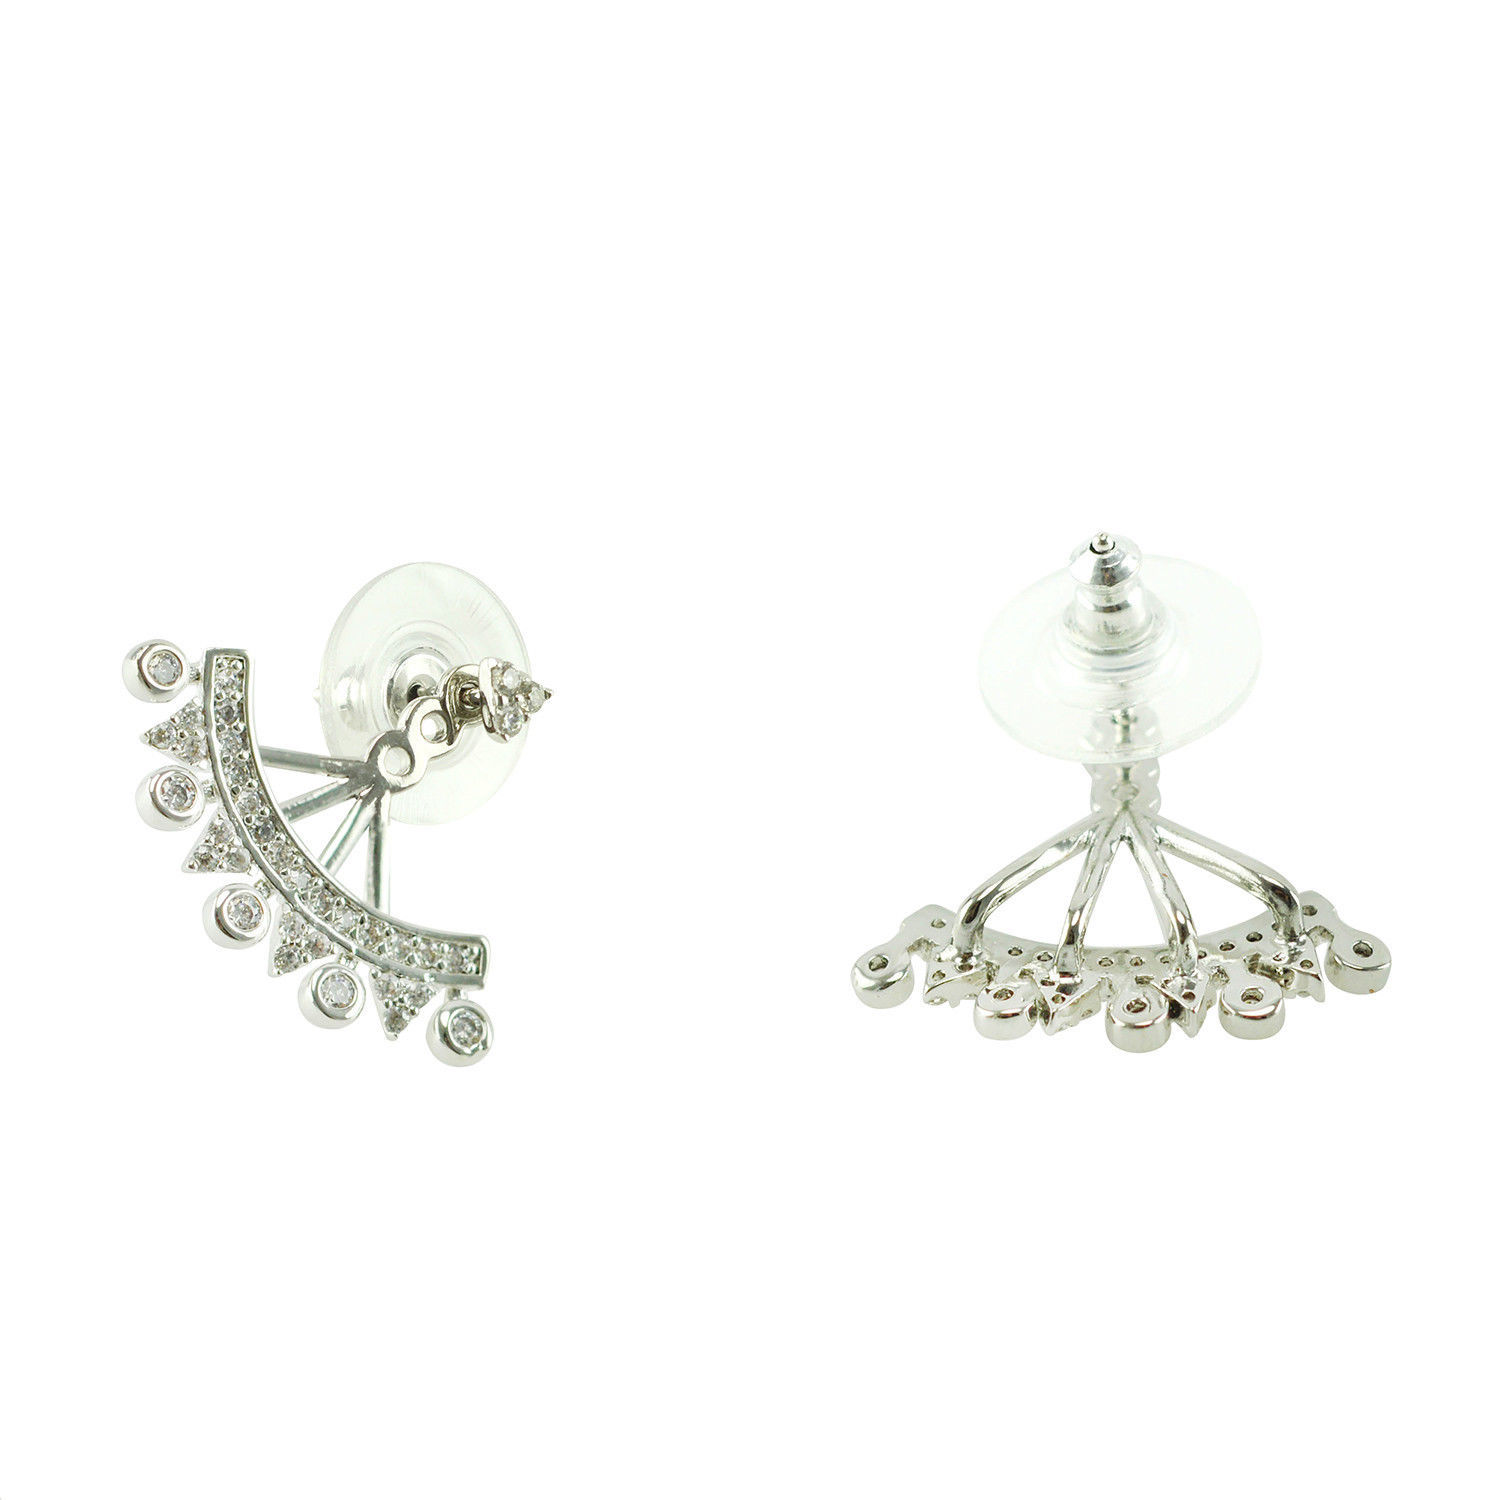 Pave Statement AAA Cubic Zirconia Rhodium Ear Jacket Earrings;HOT